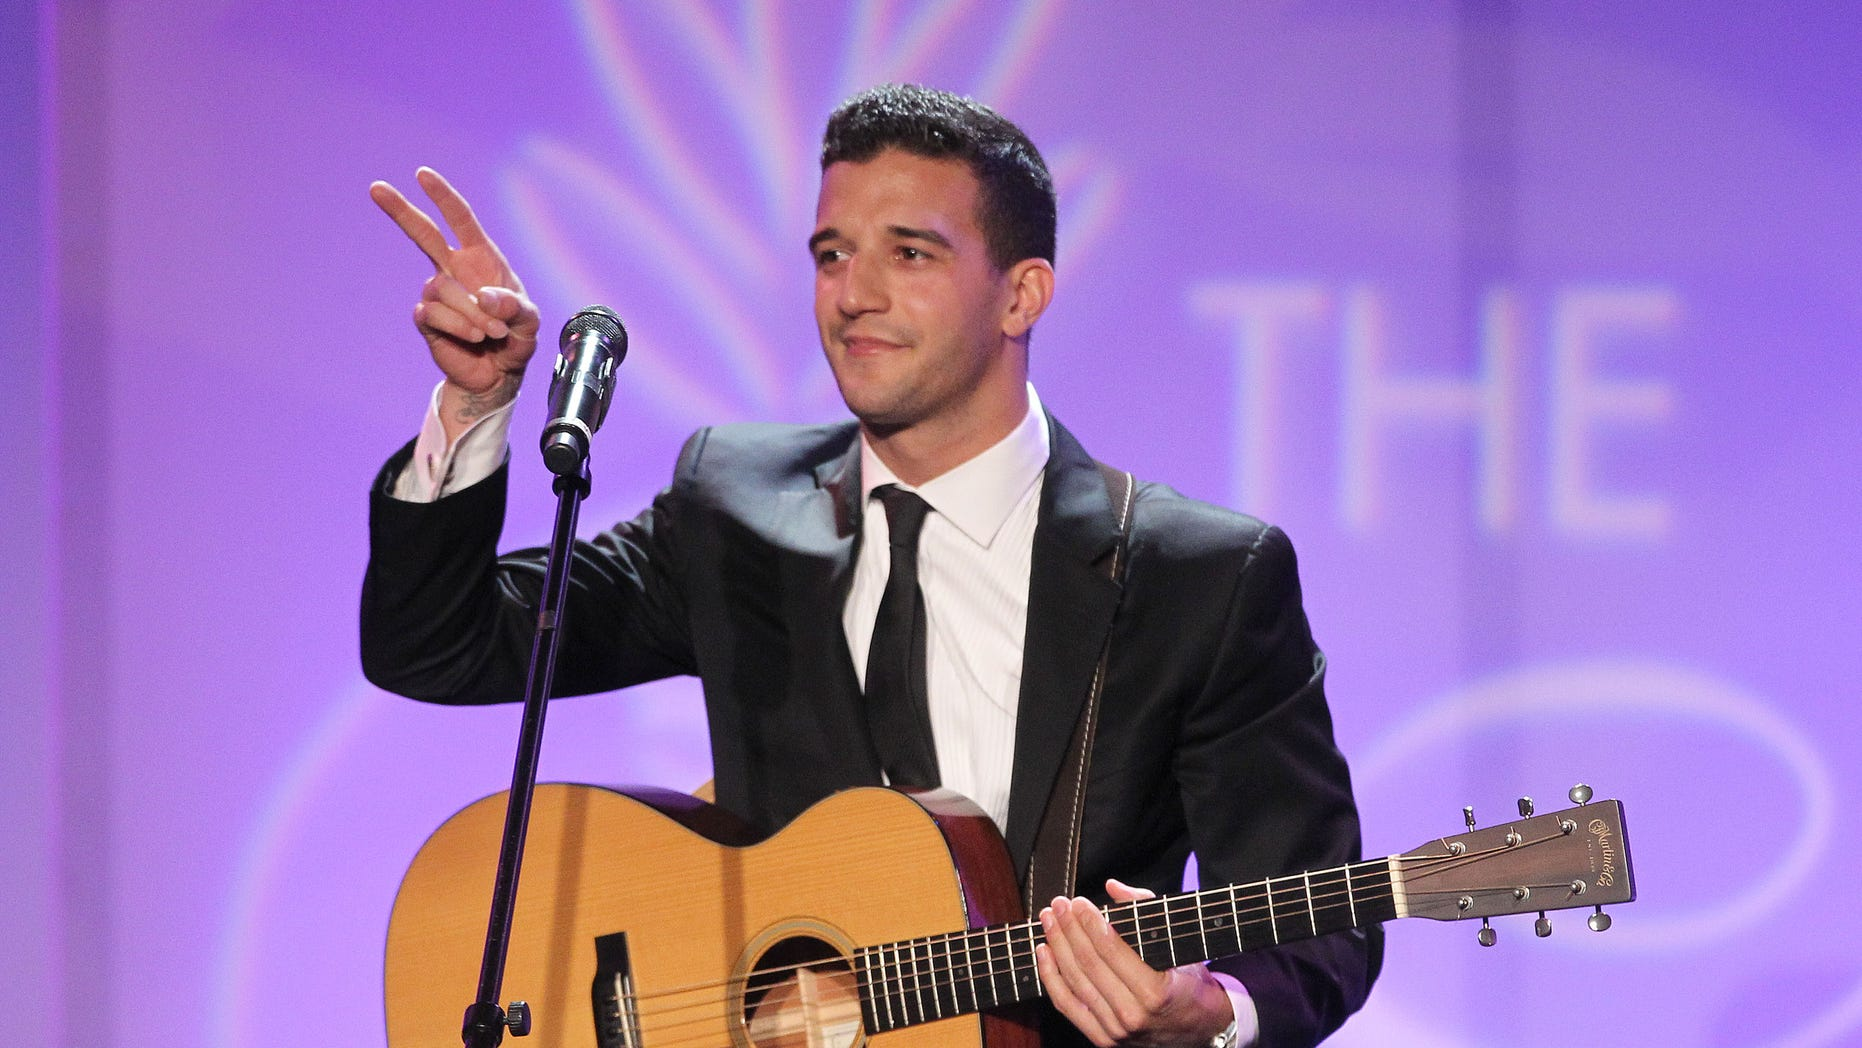 BEVERLY HILLS, CA - AUGUST 12: Mark Ballas performs during the 26th Annual Imagen Awards Gala at the Beverly Hilton Hotel on August 12, 2011 in Beverly Hills, California.  (Photo by Frederick M. Brown/Getty Images)